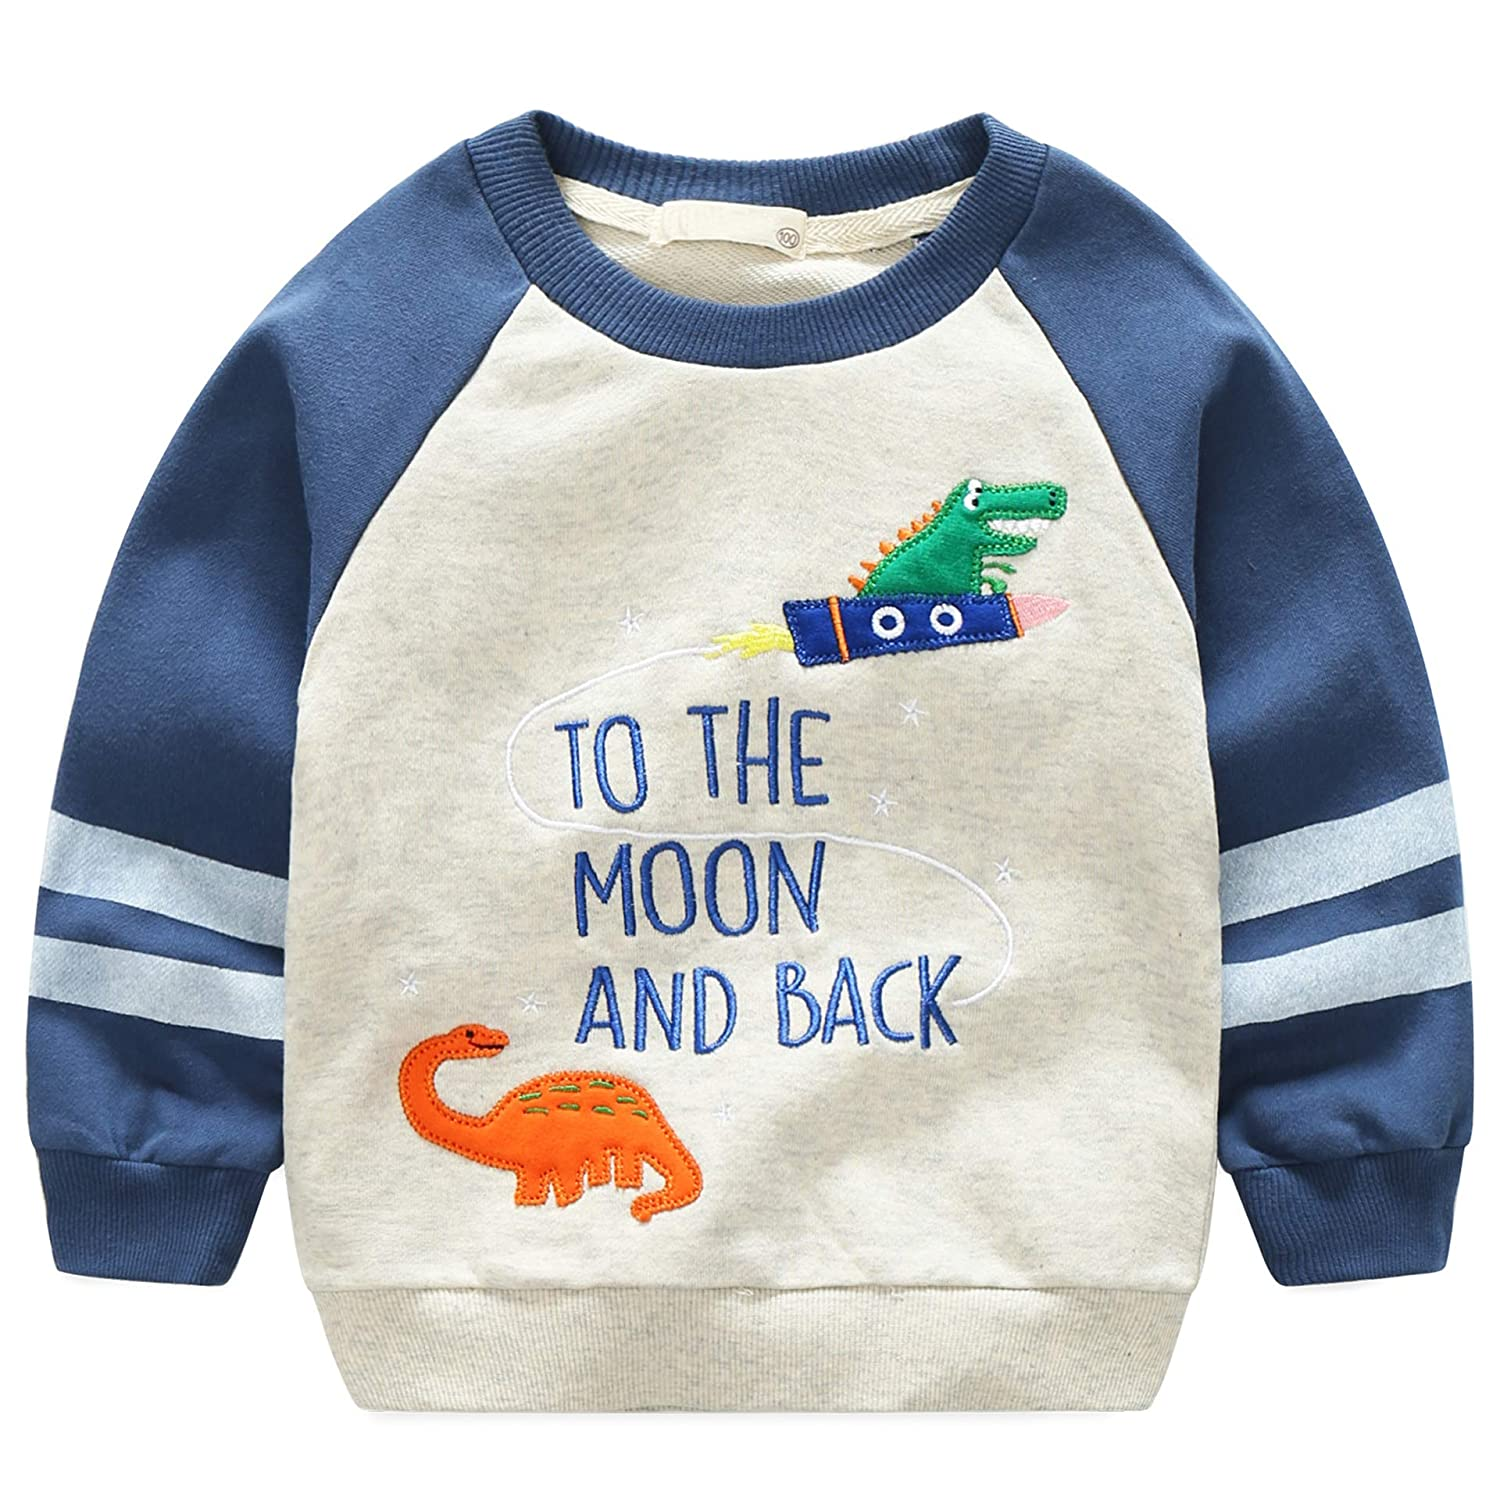 Leping Boys Sweatshirt Kids Toddlers Baby Crew Neck Long Sleeve Pullover Sweater 2-7 Years